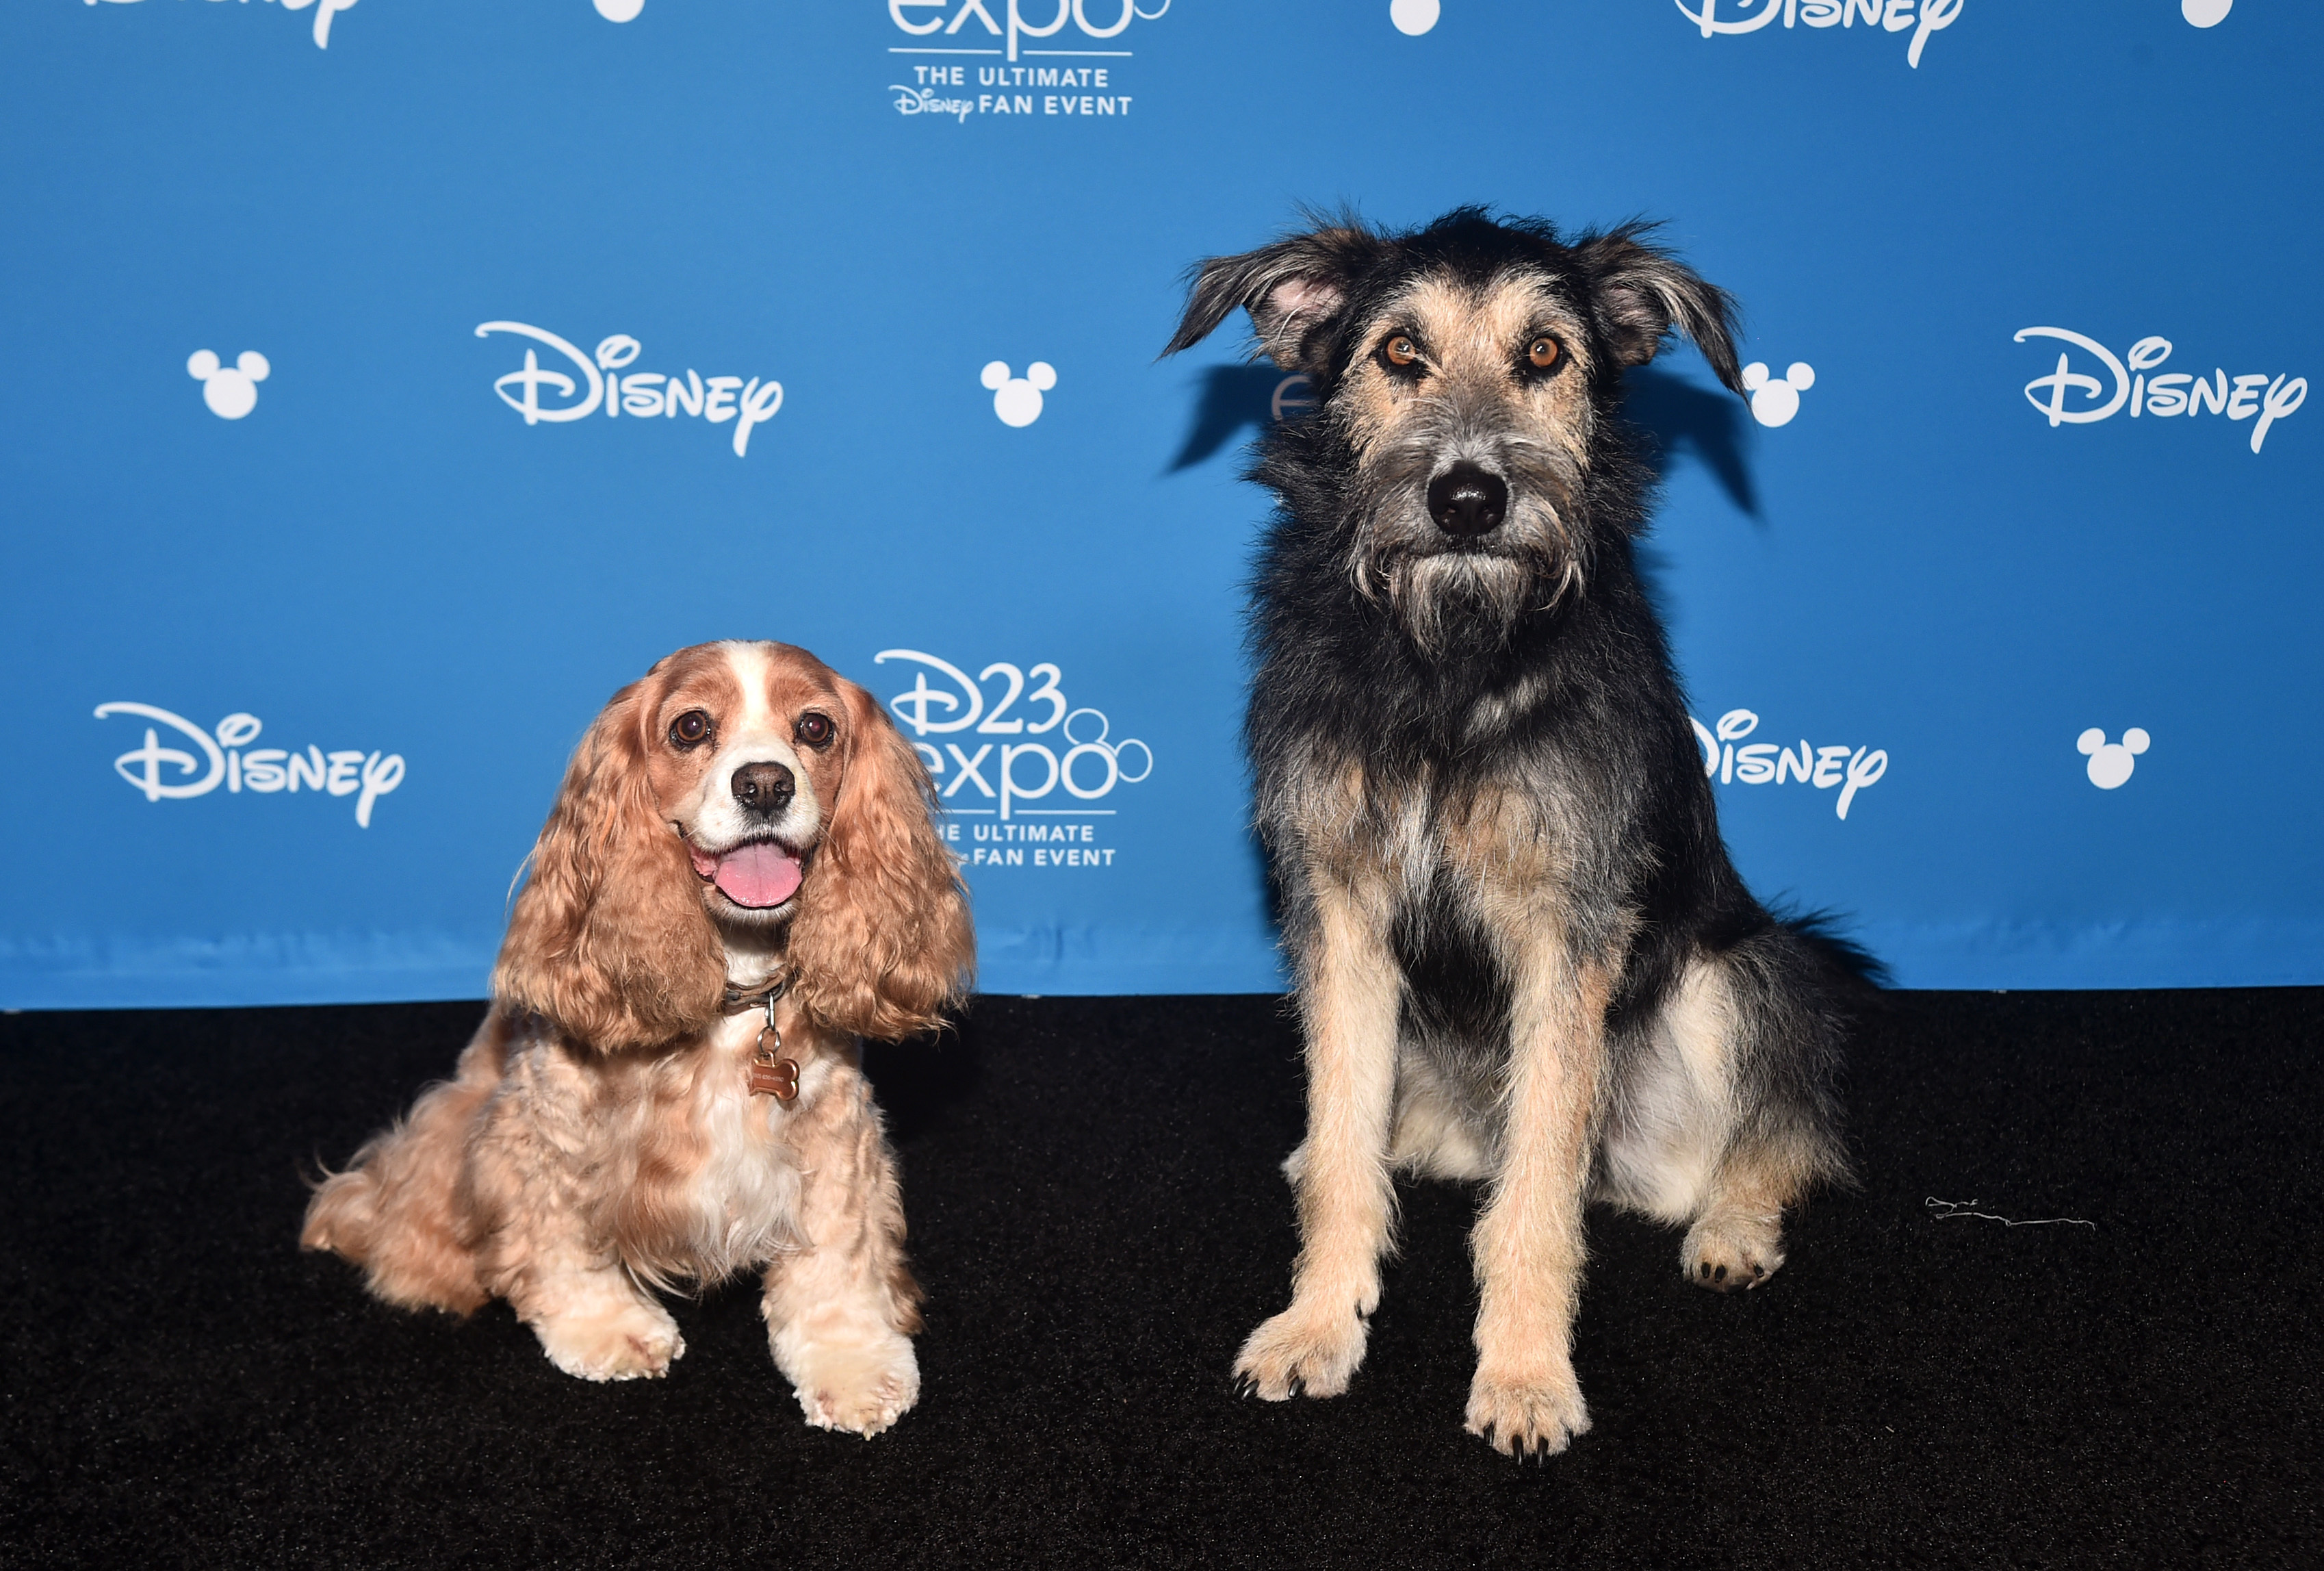 Meet Monte Kill Shelter Rescue Dog In Lady And The Tramp Remake Wonderwall Com